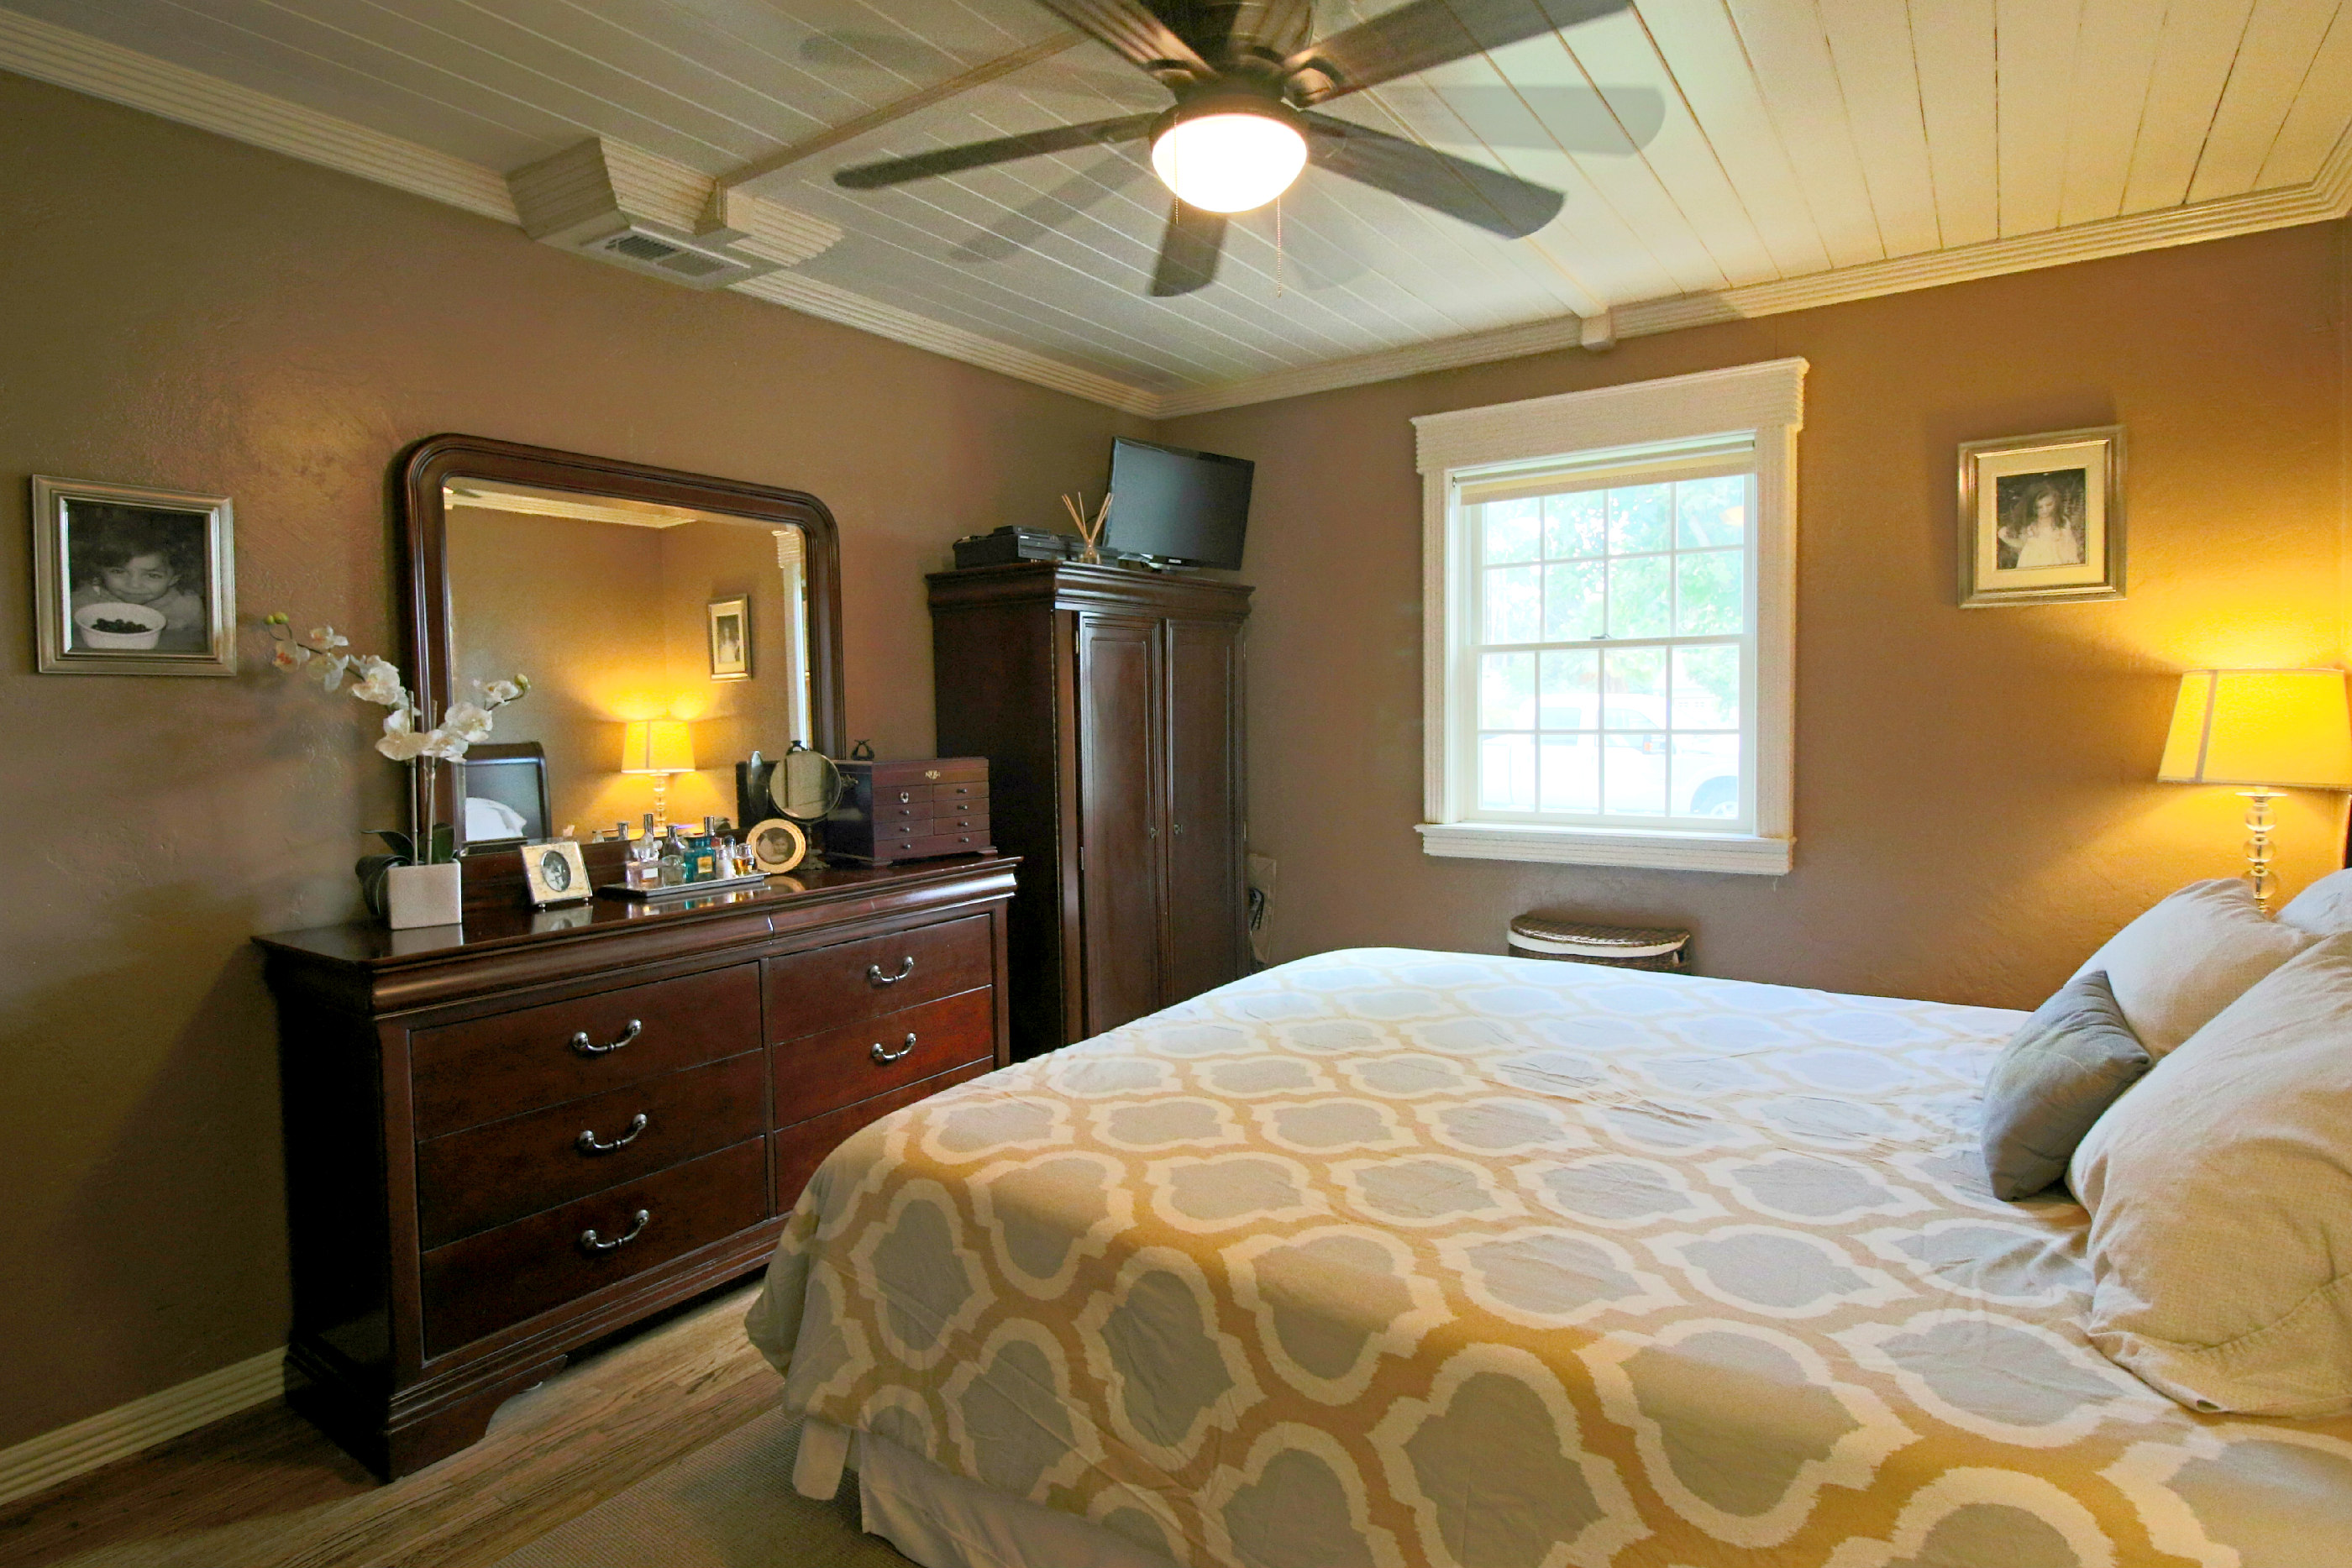 Master bedroom with ceiling fan, hardwood floors, and double pane windows.